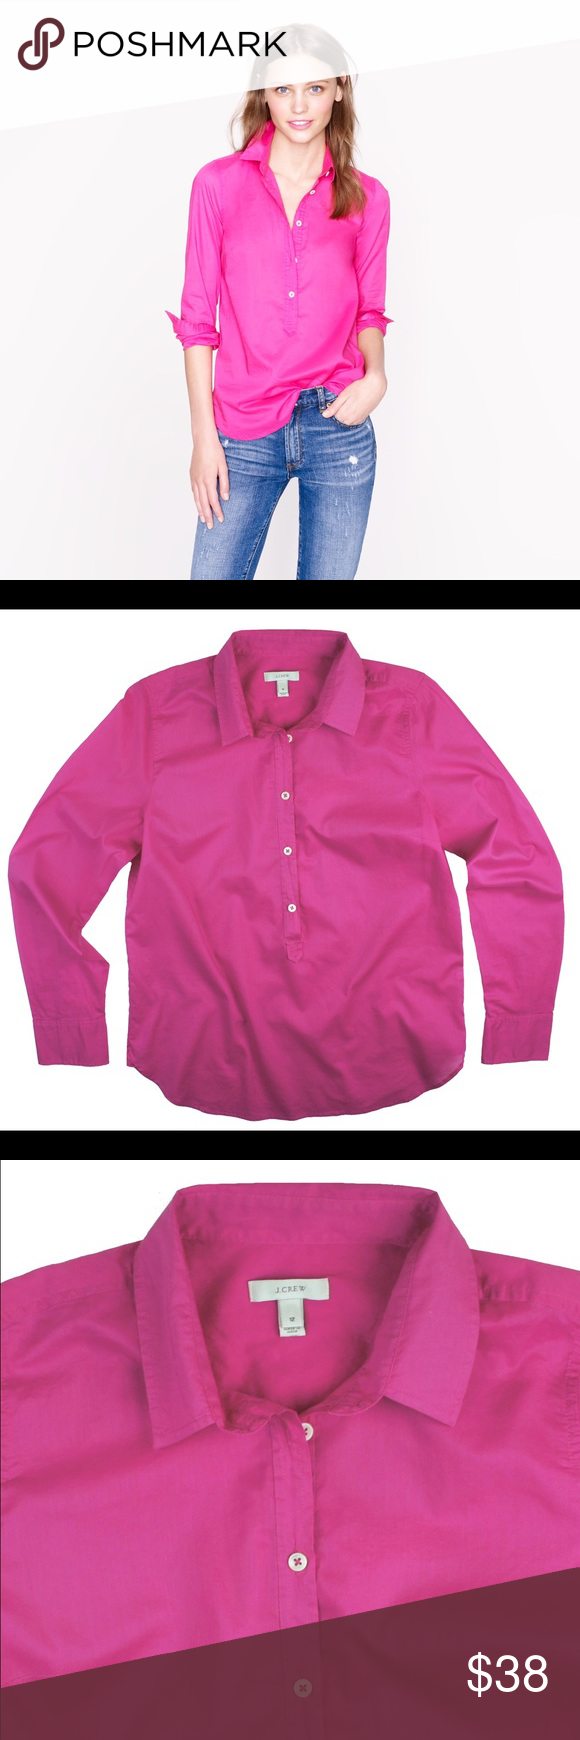 """JCREW Pink Indian Voile Popover Shirt Excellent condition! This pink Indian voulue Popover Shirt from JCREW features button closures and a pullover style. Light weight. Made of 100% cotton. Measures: bust: 42"""", total length: 27"""", sleeves: 25"""" J. Crew Tops Button Down Shirts"""